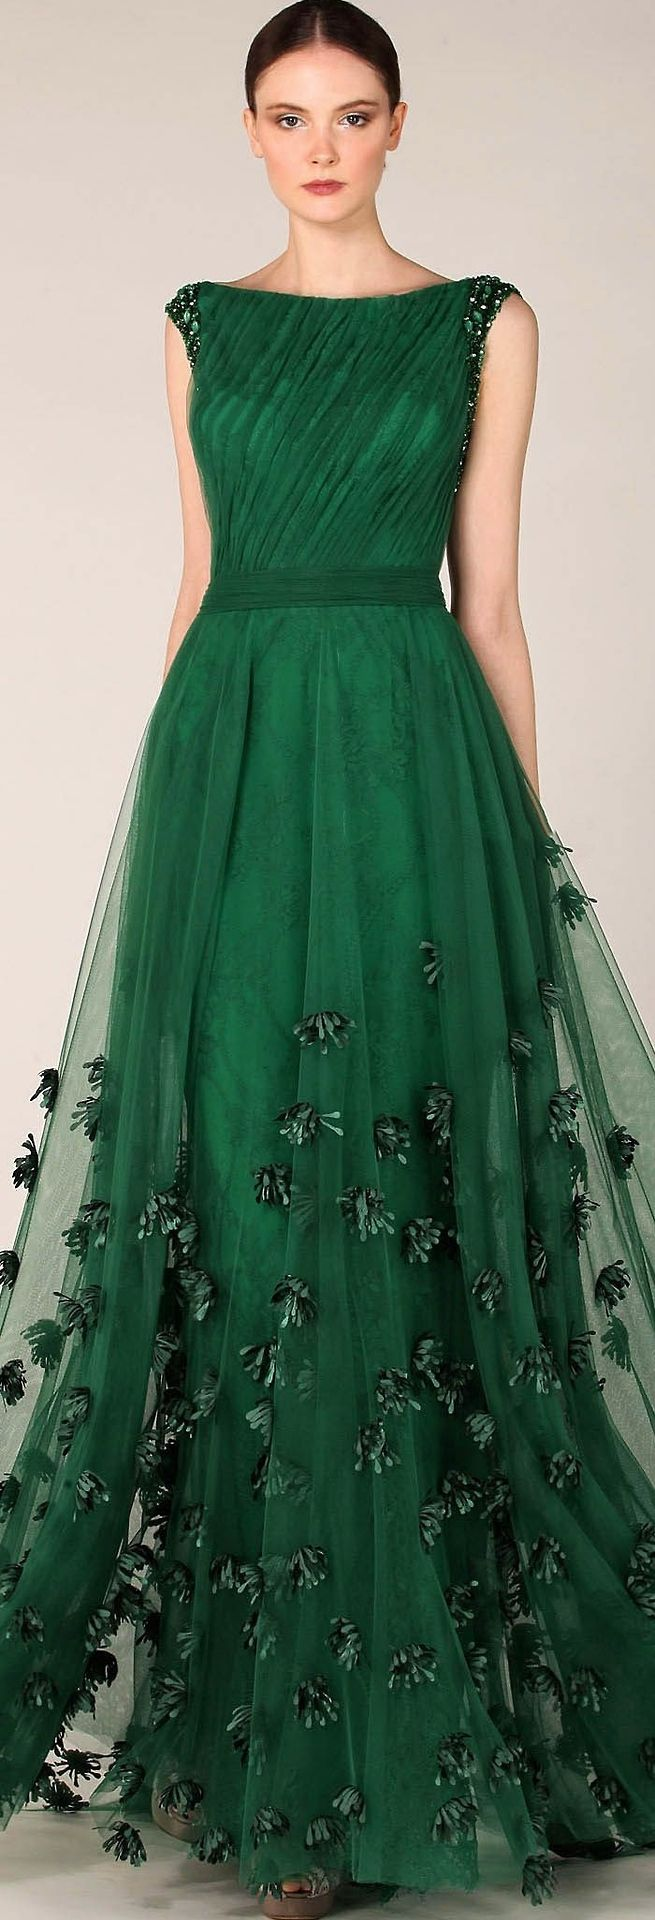 I would love to have this dress.. but I don't know where I'd wear it..I'd make up a reason!